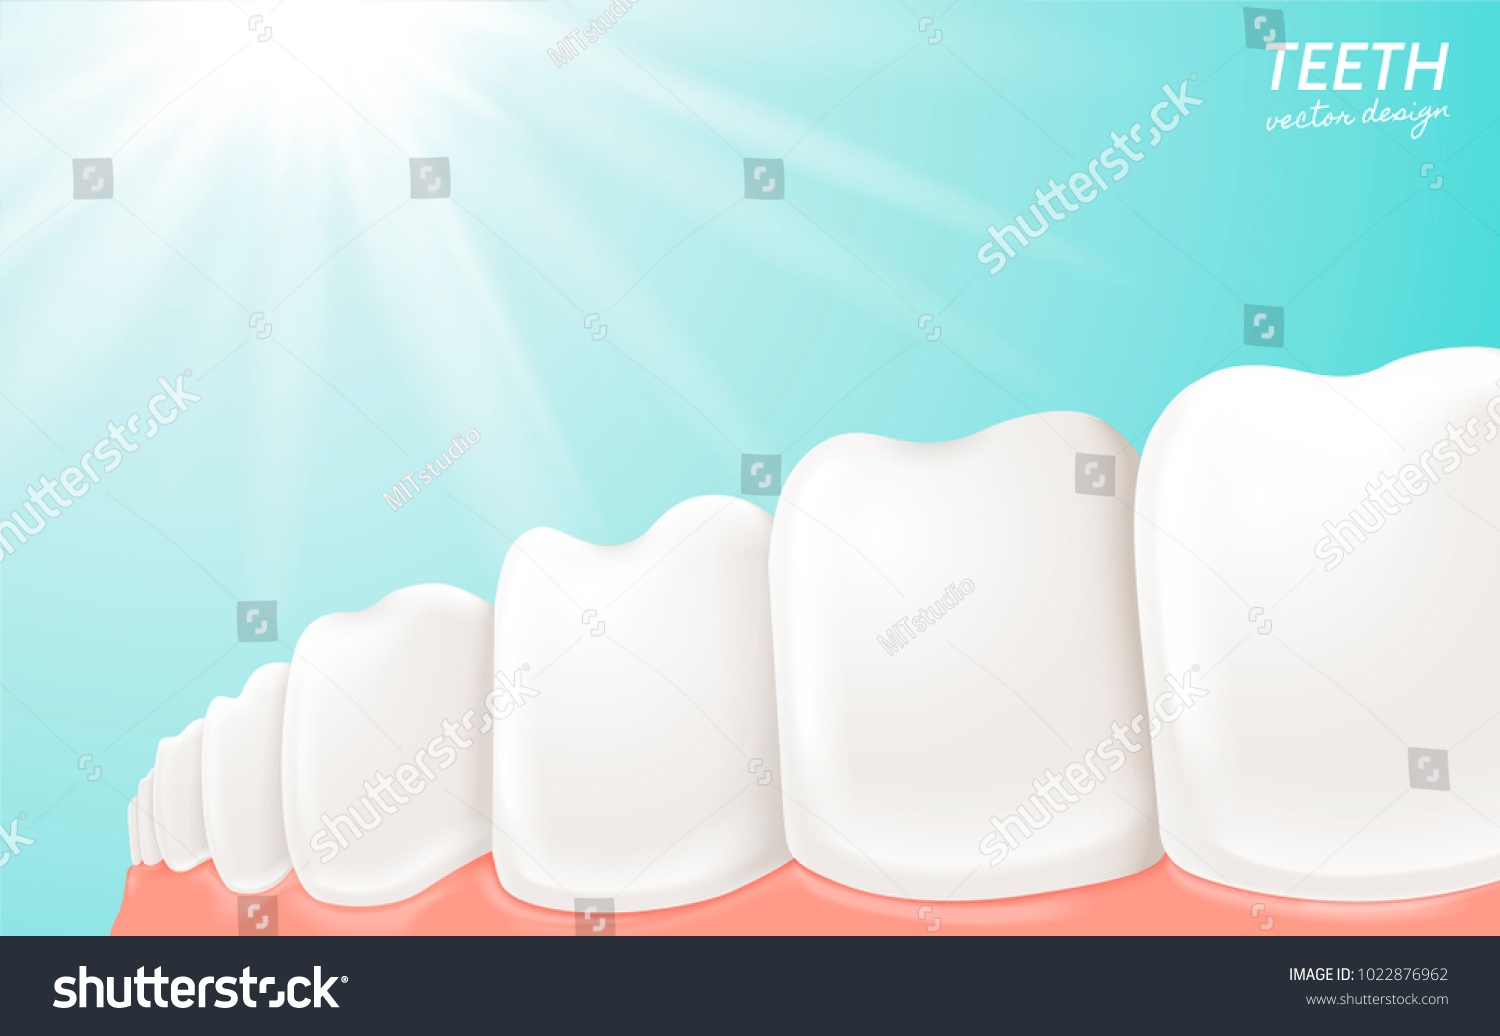 Human Teeth Gum Anatomy Clean White Stock Vector 1022876962 ...